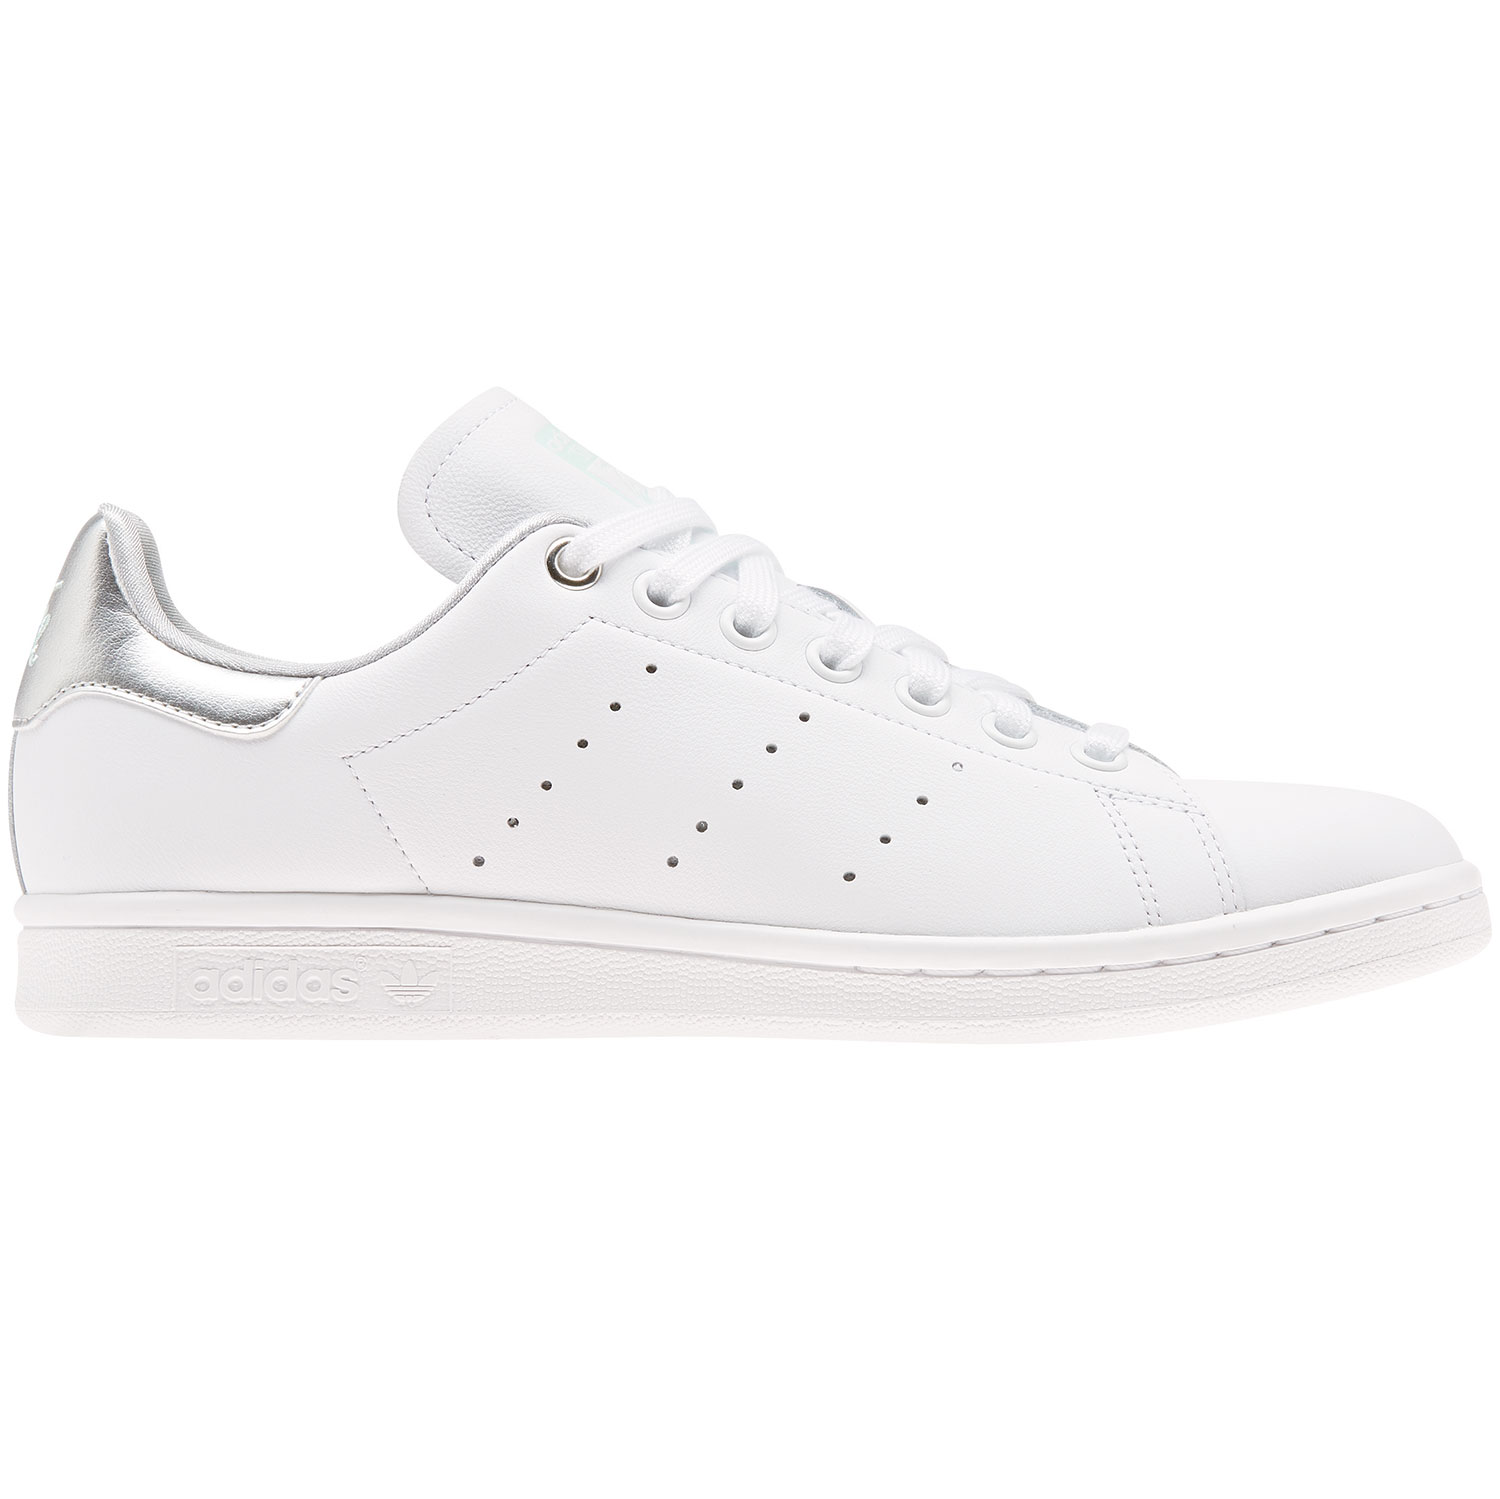 adidas Originals Stan Smith W Damen Sneaker weiß mint G27907